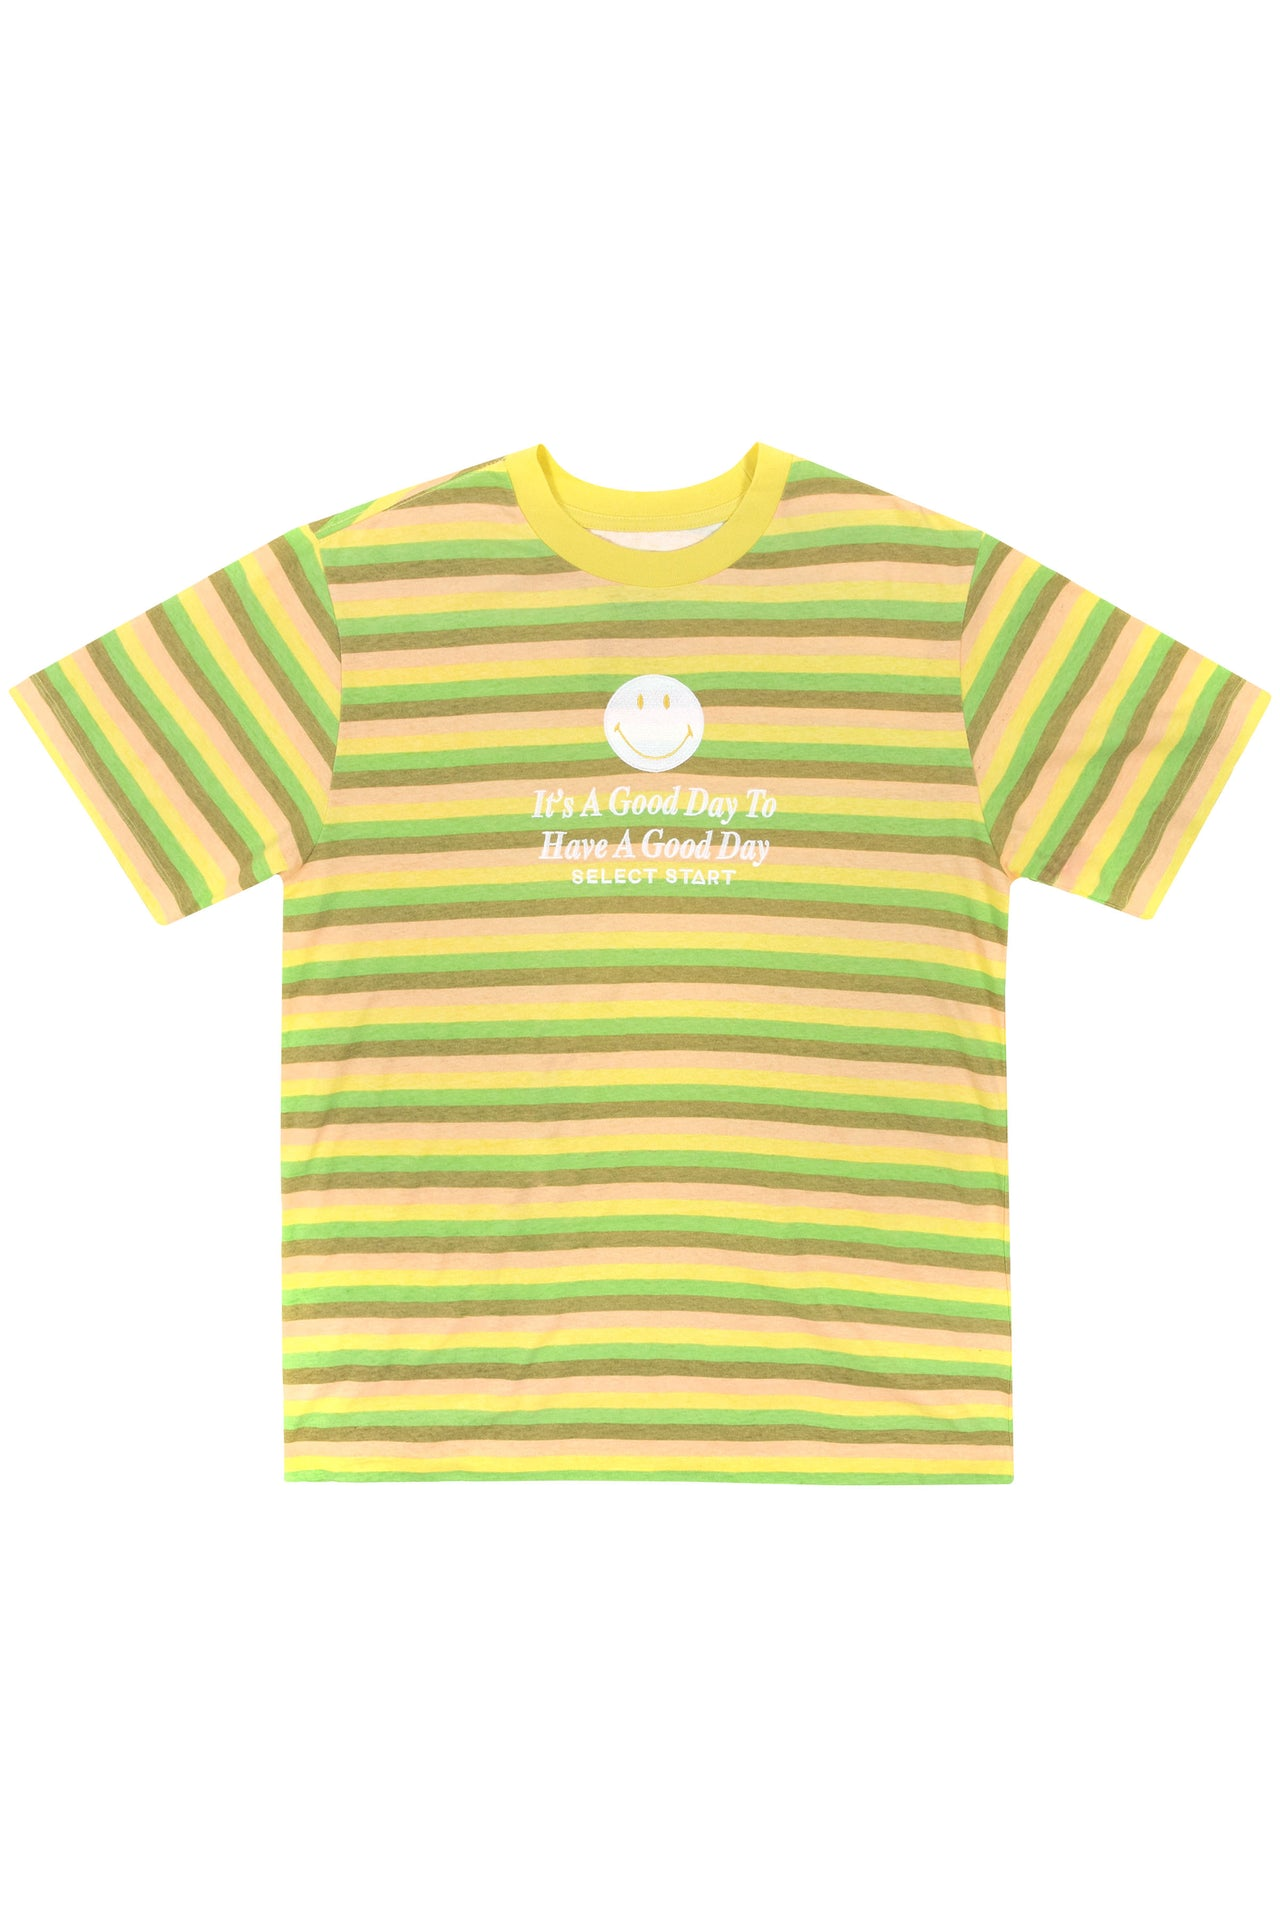 Smiley Stripe Tee - Select Start